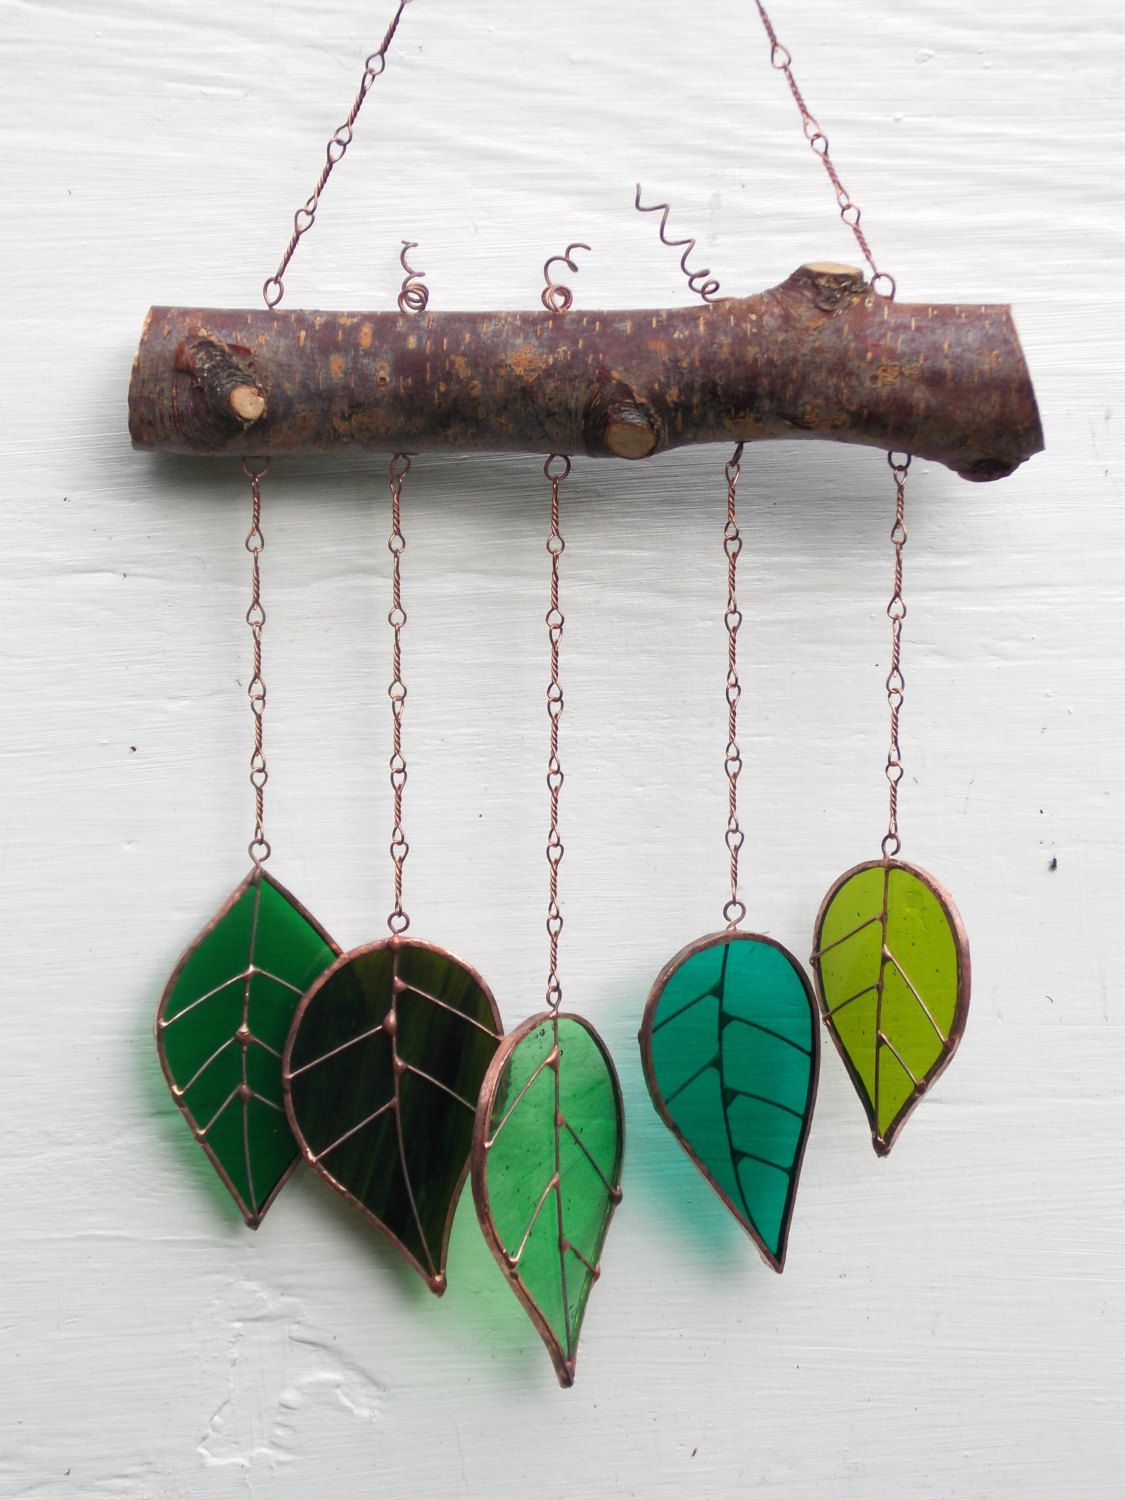 Sun Catcher Glass Leaves 'Spring Leaves' Hanging Wind